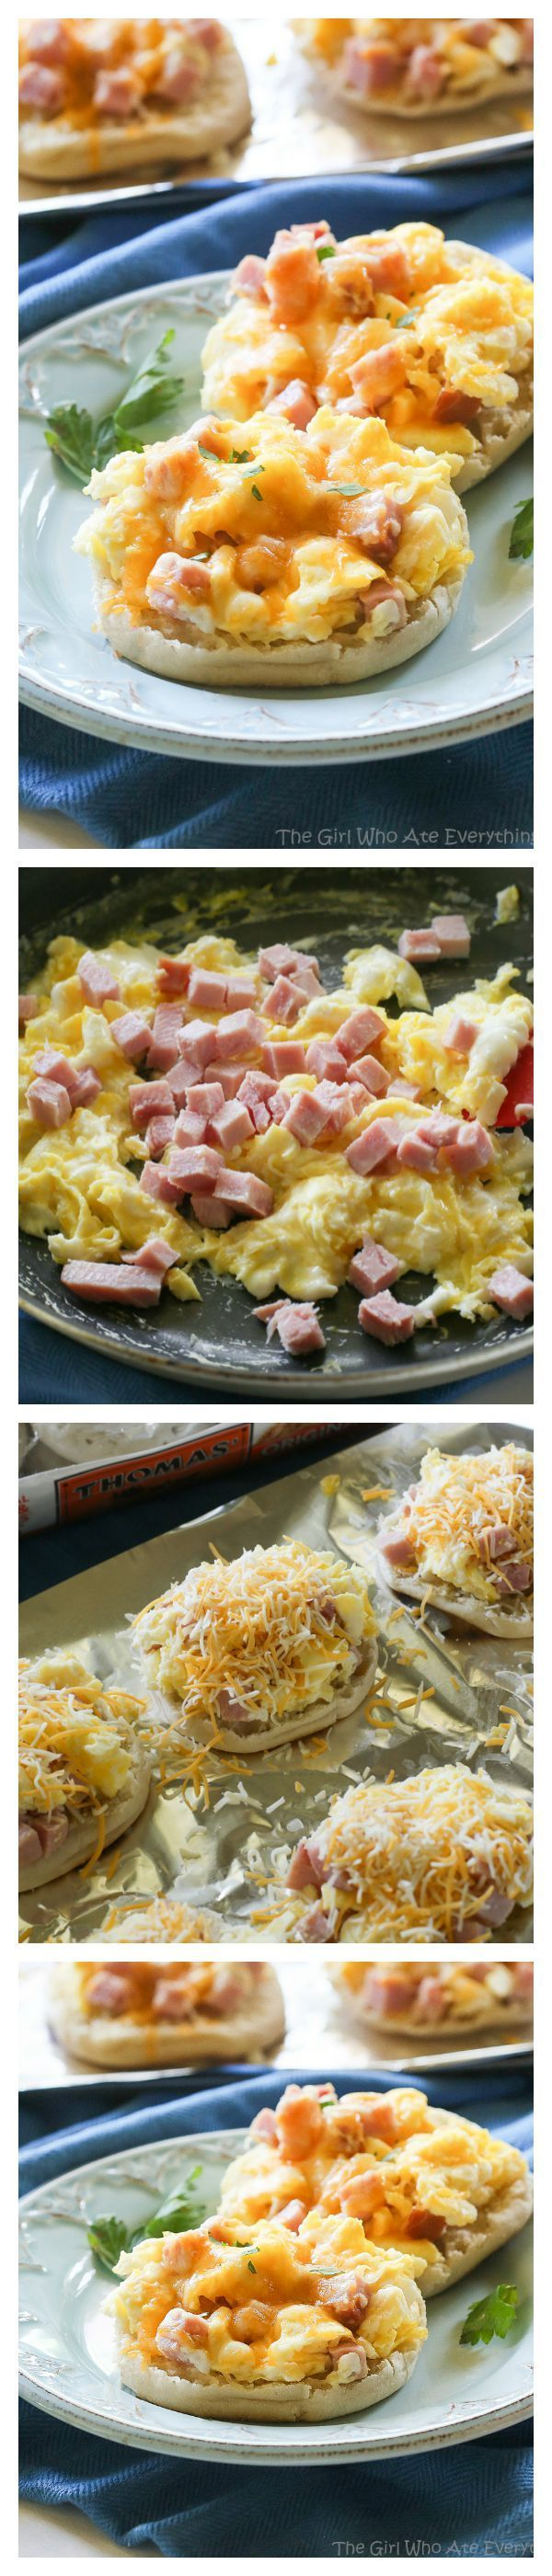 Breakfast Pizzas - toasty English muffins topped with scrambled eggs, ham, and melted cheese. the-girl-who-ate-everything.com